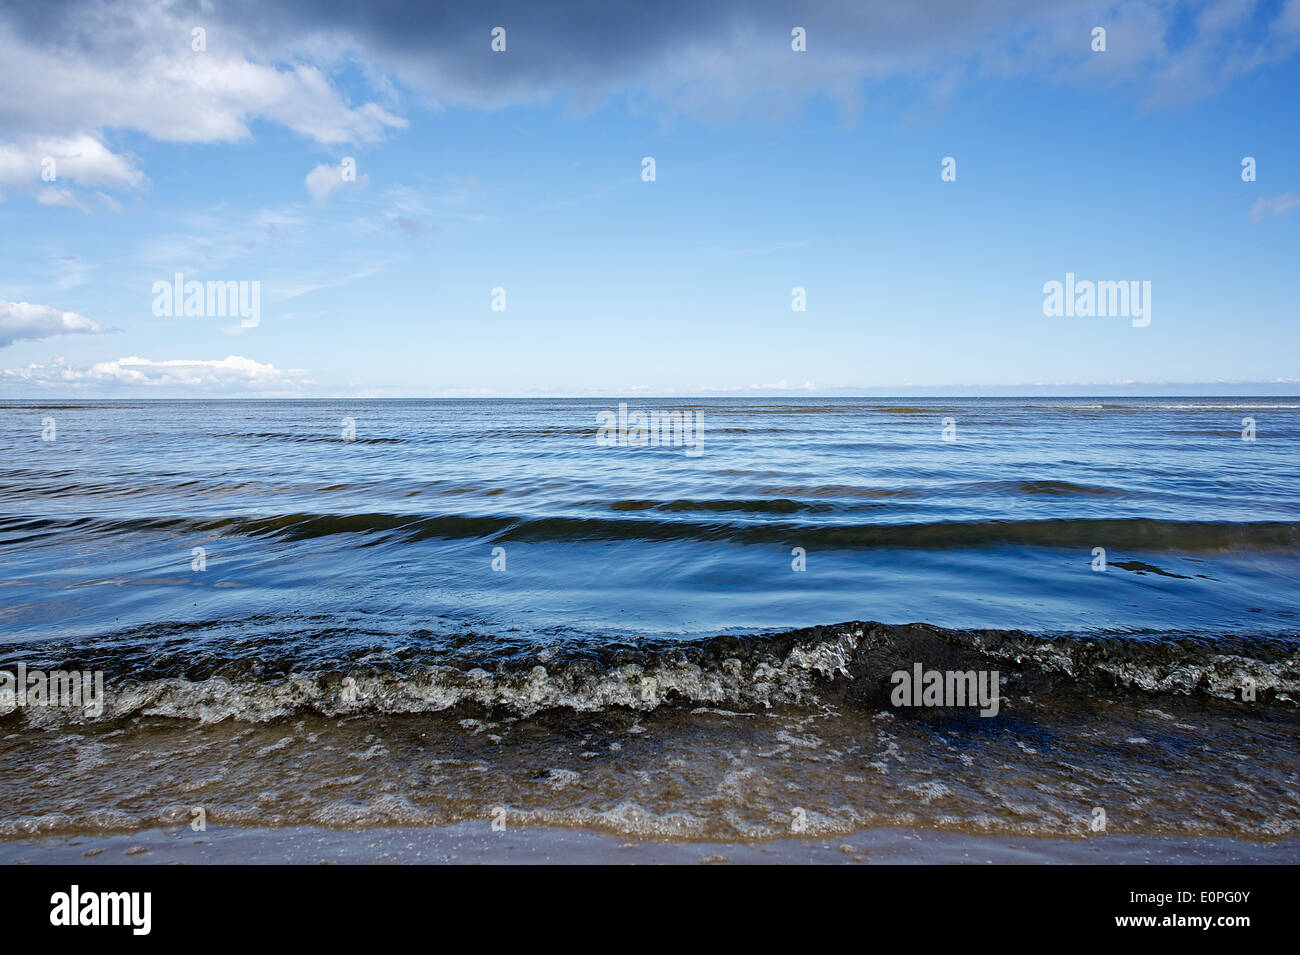 Ocean waves and very blue sky with some stormy clouds. Stock Photo